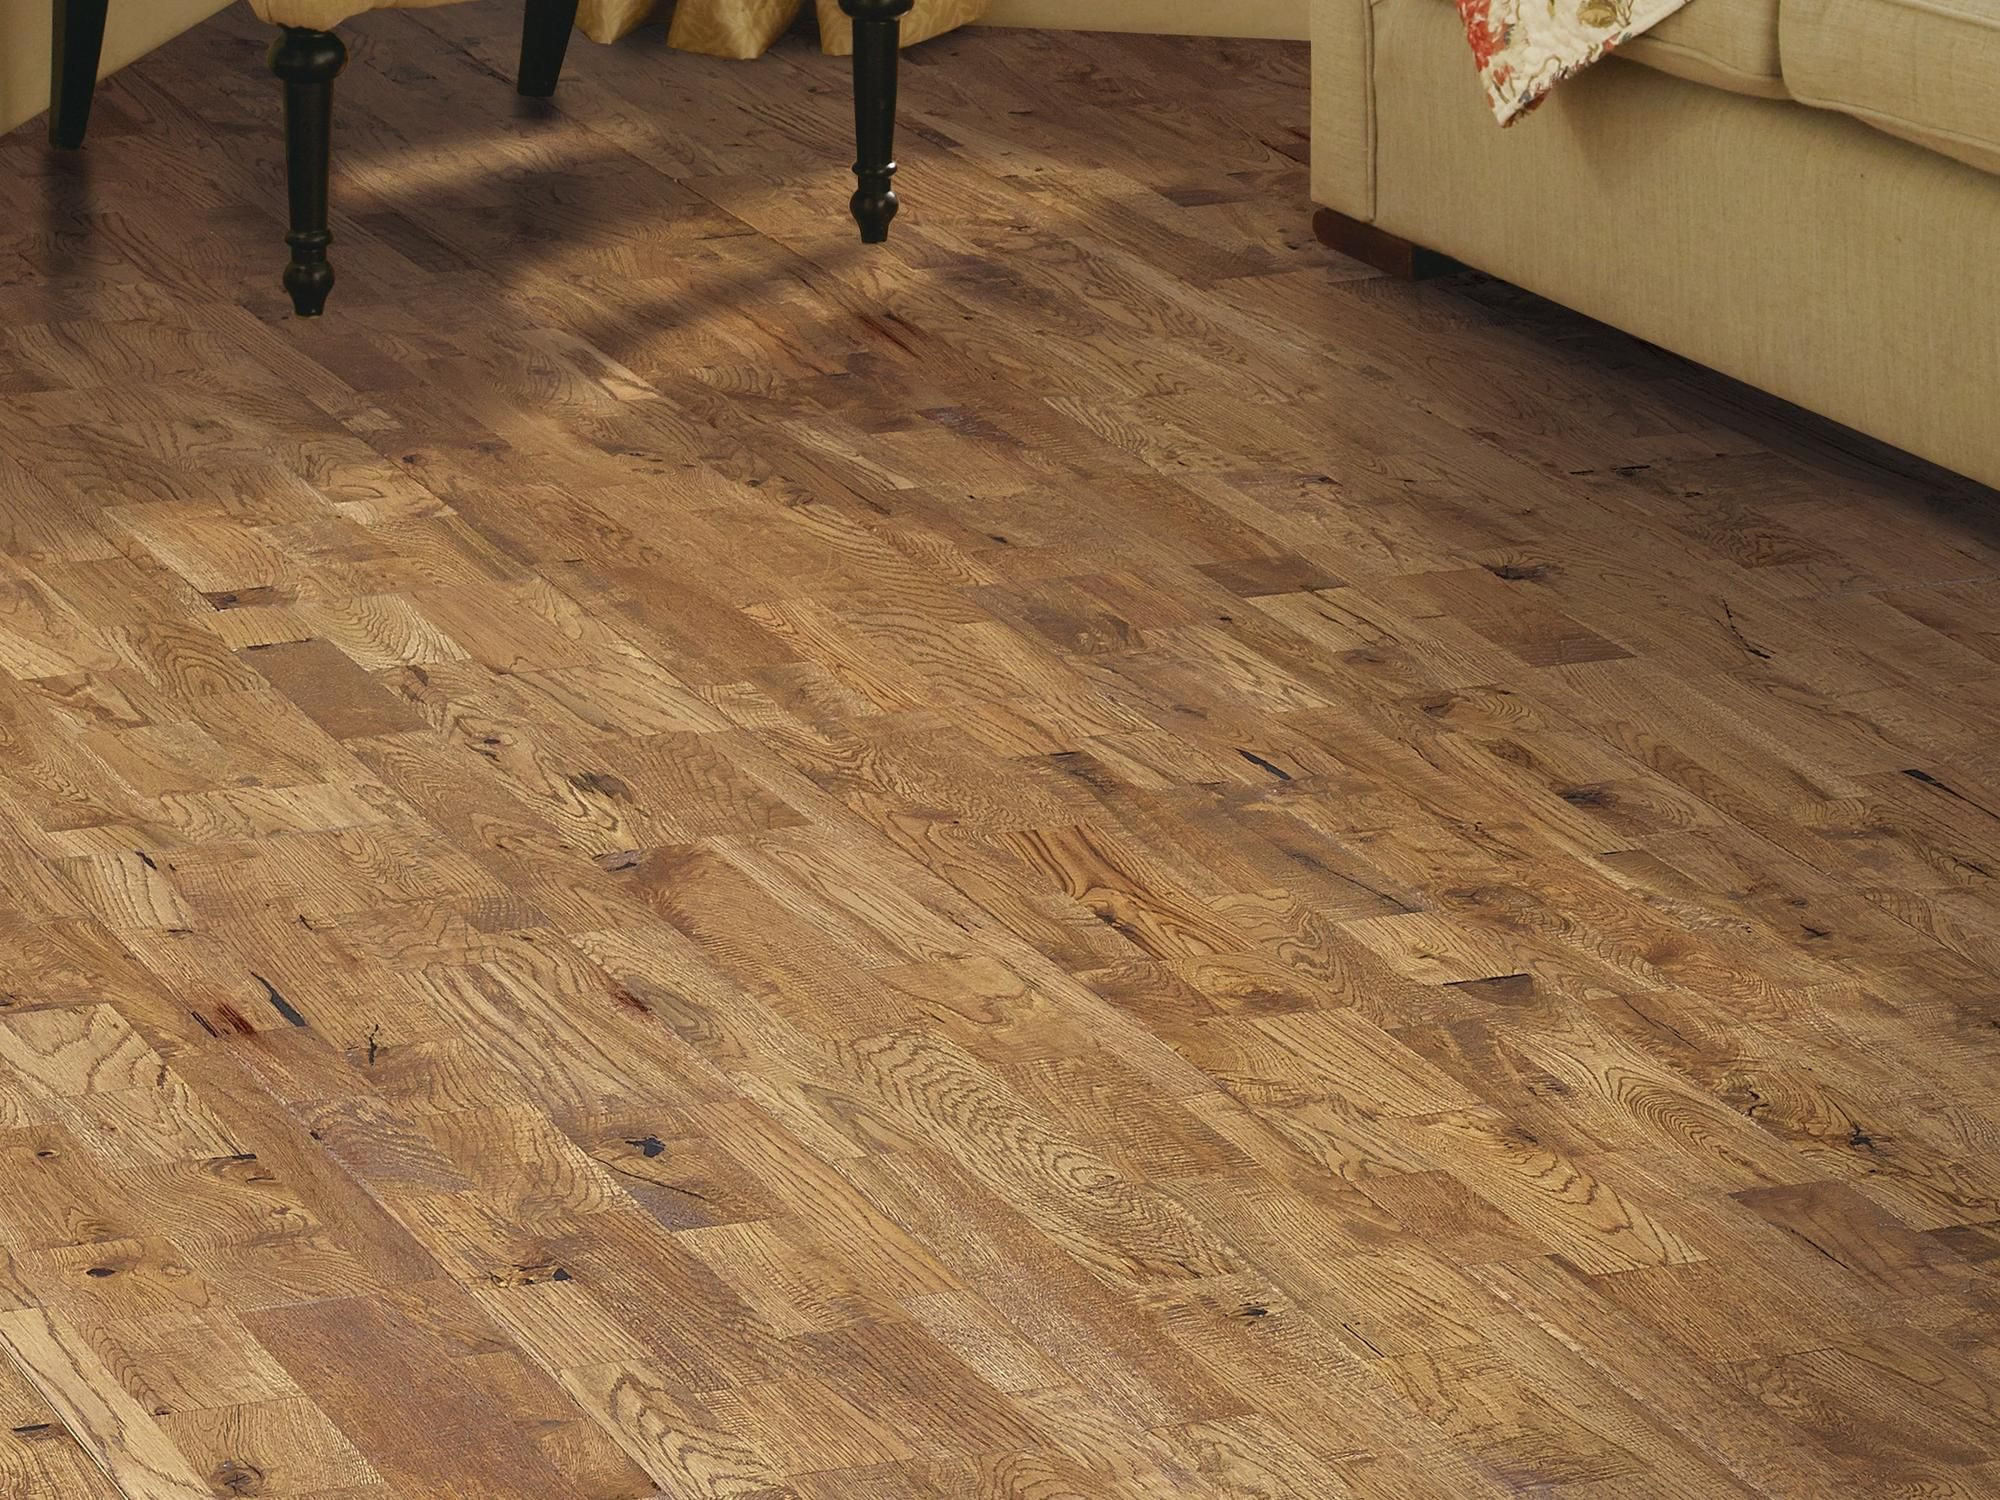 26 Ideal Shaw 3 4 Hardwood Flooring 2021 free download shaw 3 4 hardwood flooring of heritage oak hand scraped wire brushed solid hardwood 3 4in x 8in for heritage oak hand scraped wire brushed solid hardwood 3 4in x 8in 100188911 floor and deco